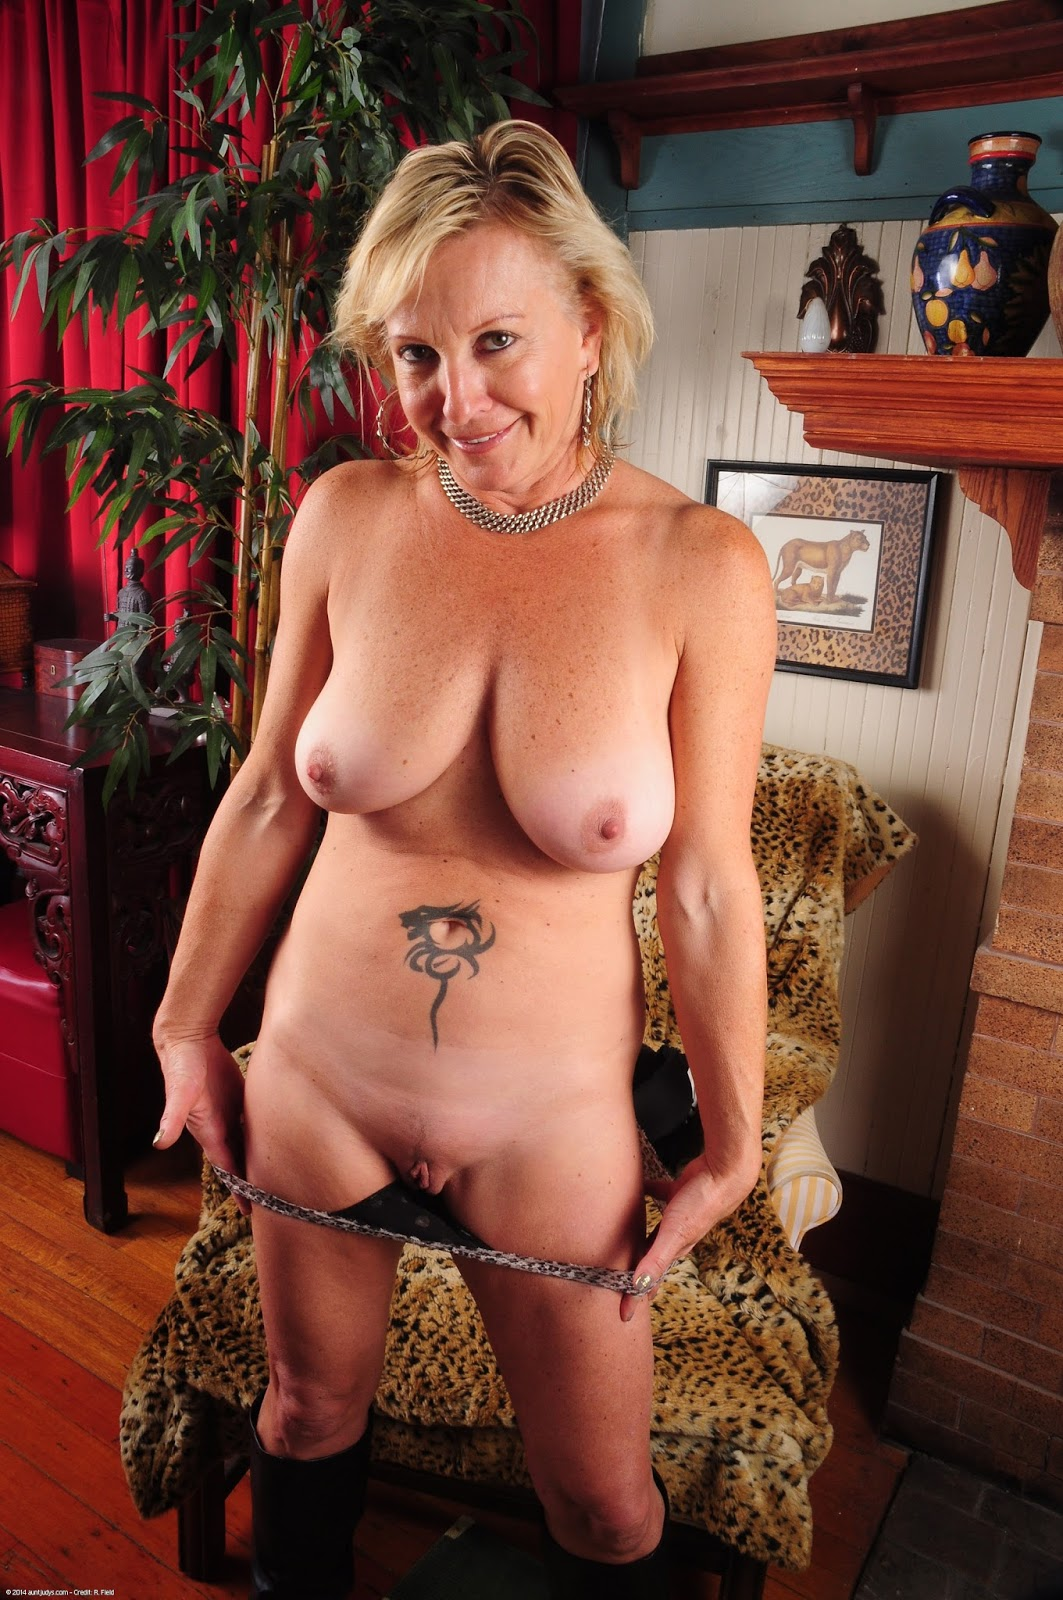 53 years housewife with 21 years toyboy - 1 5